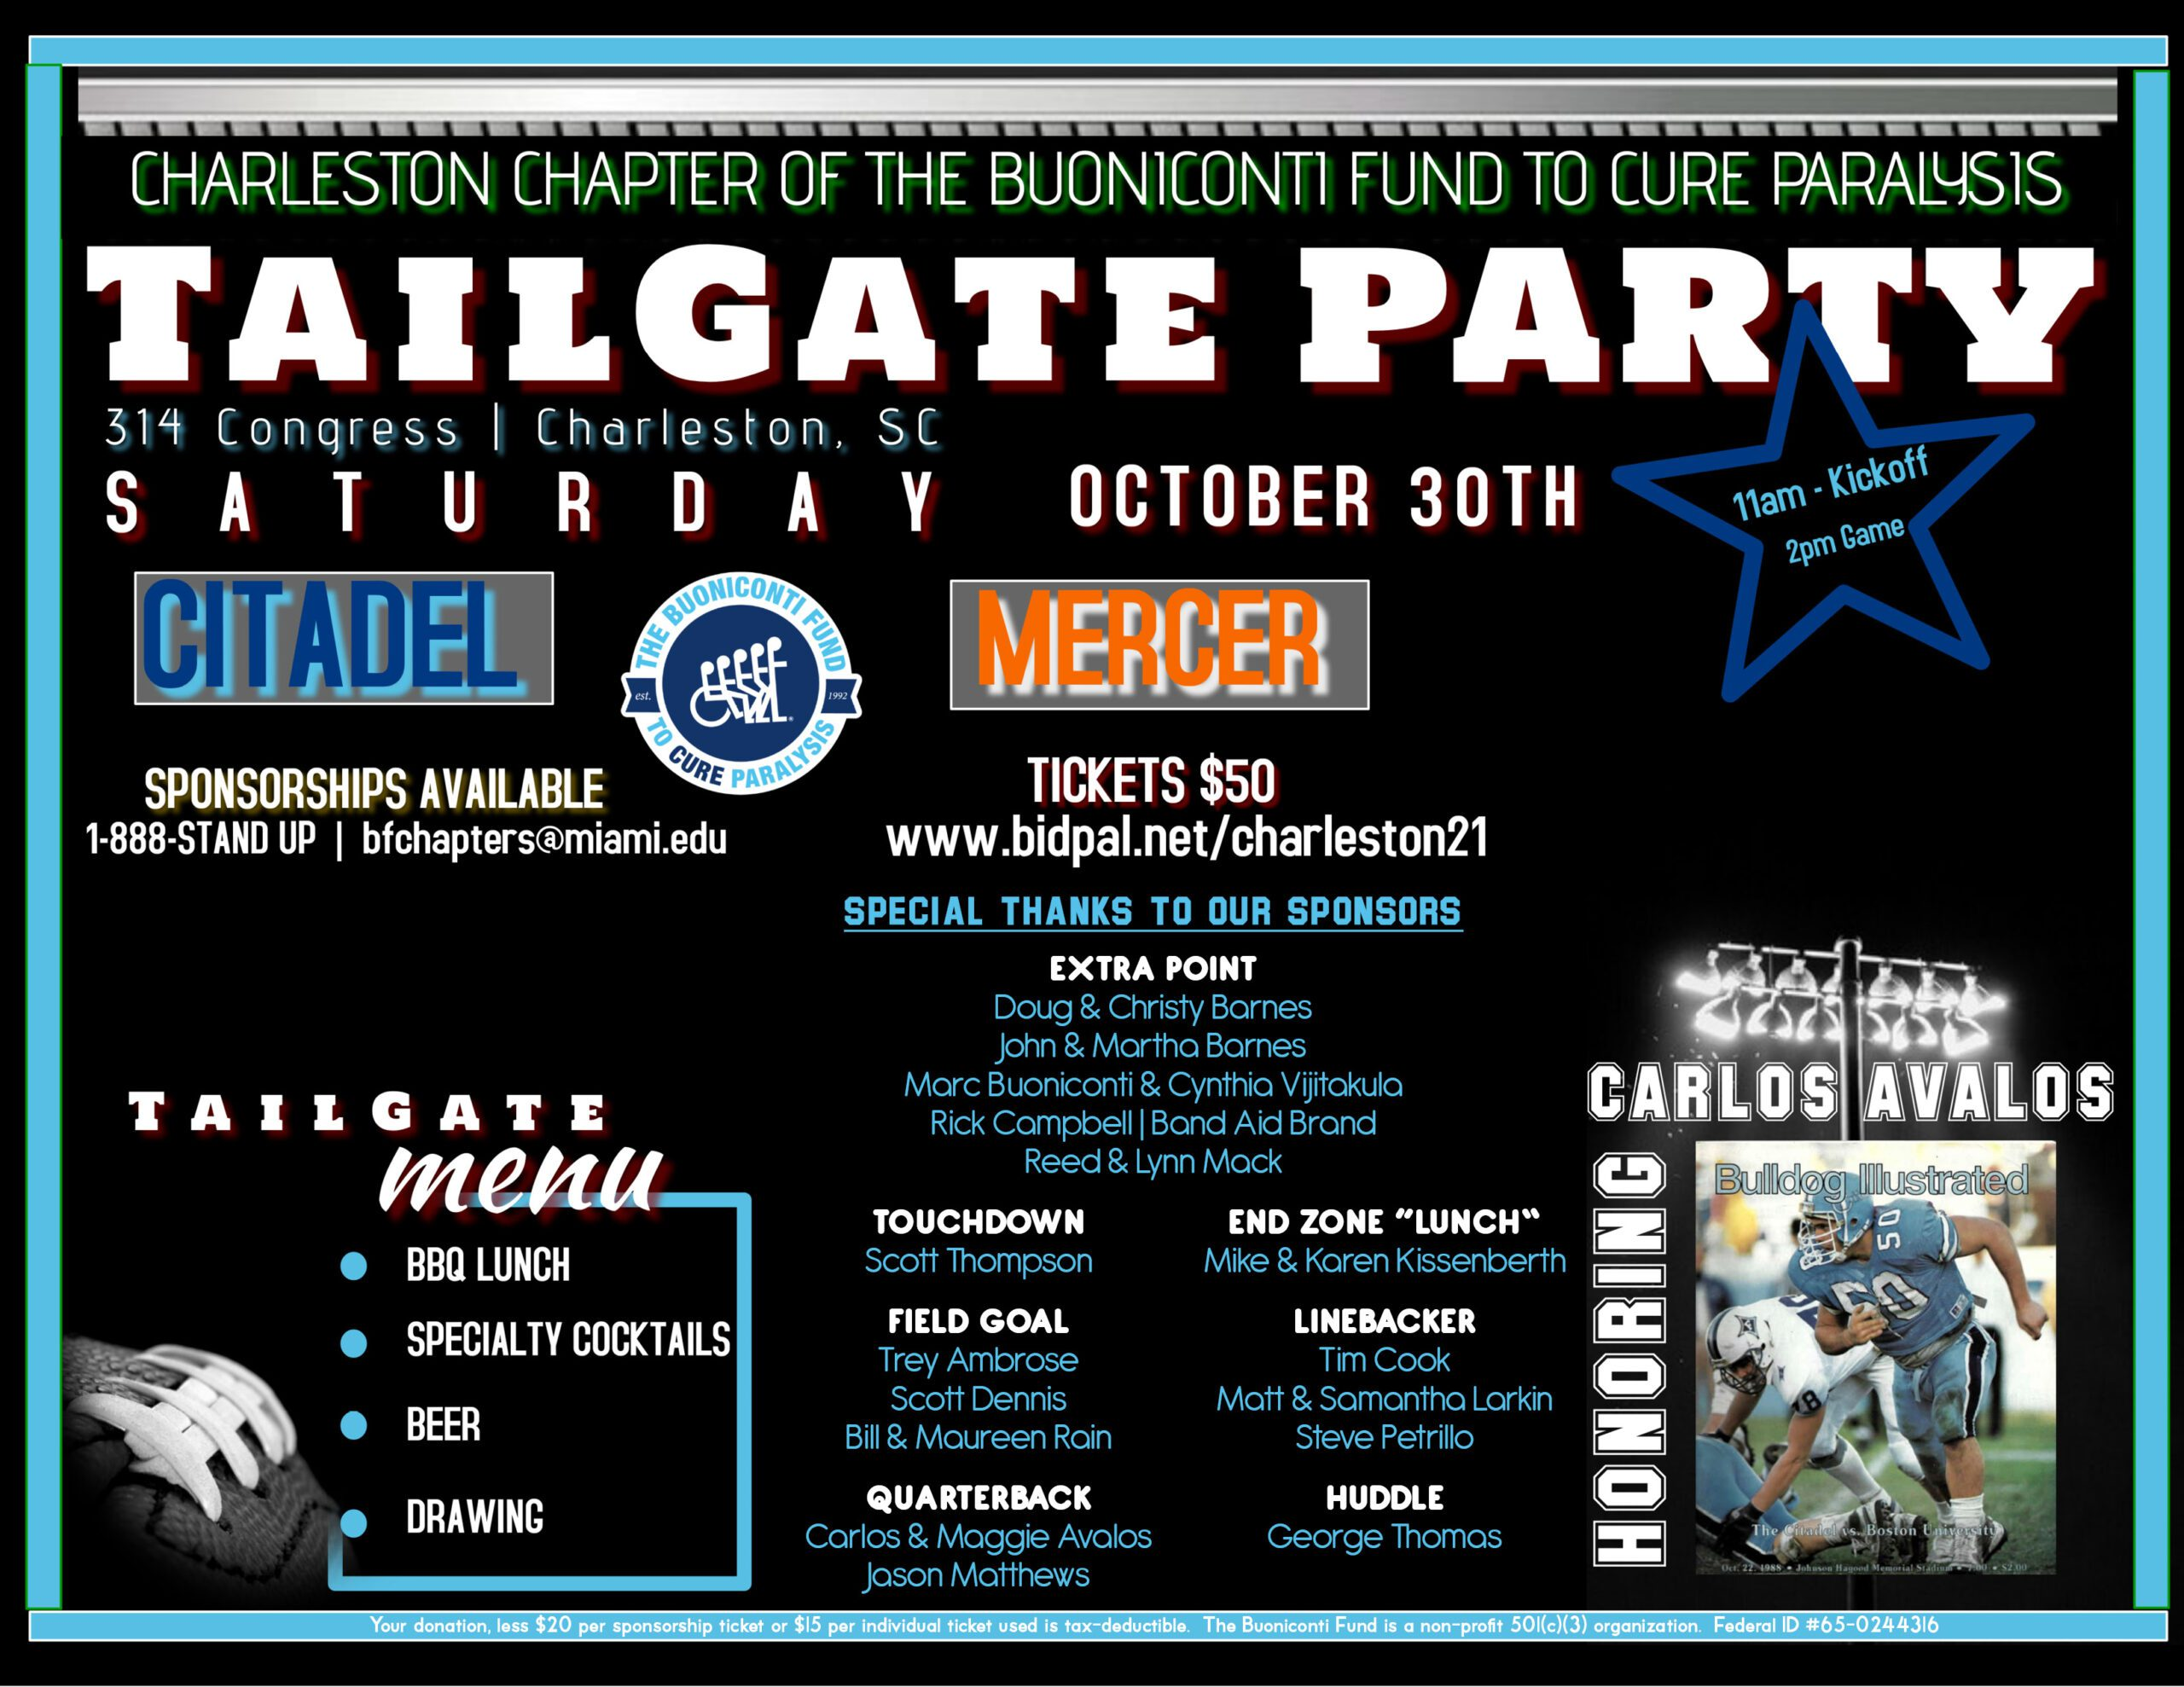 13th Annual Charleston Tailgate Party